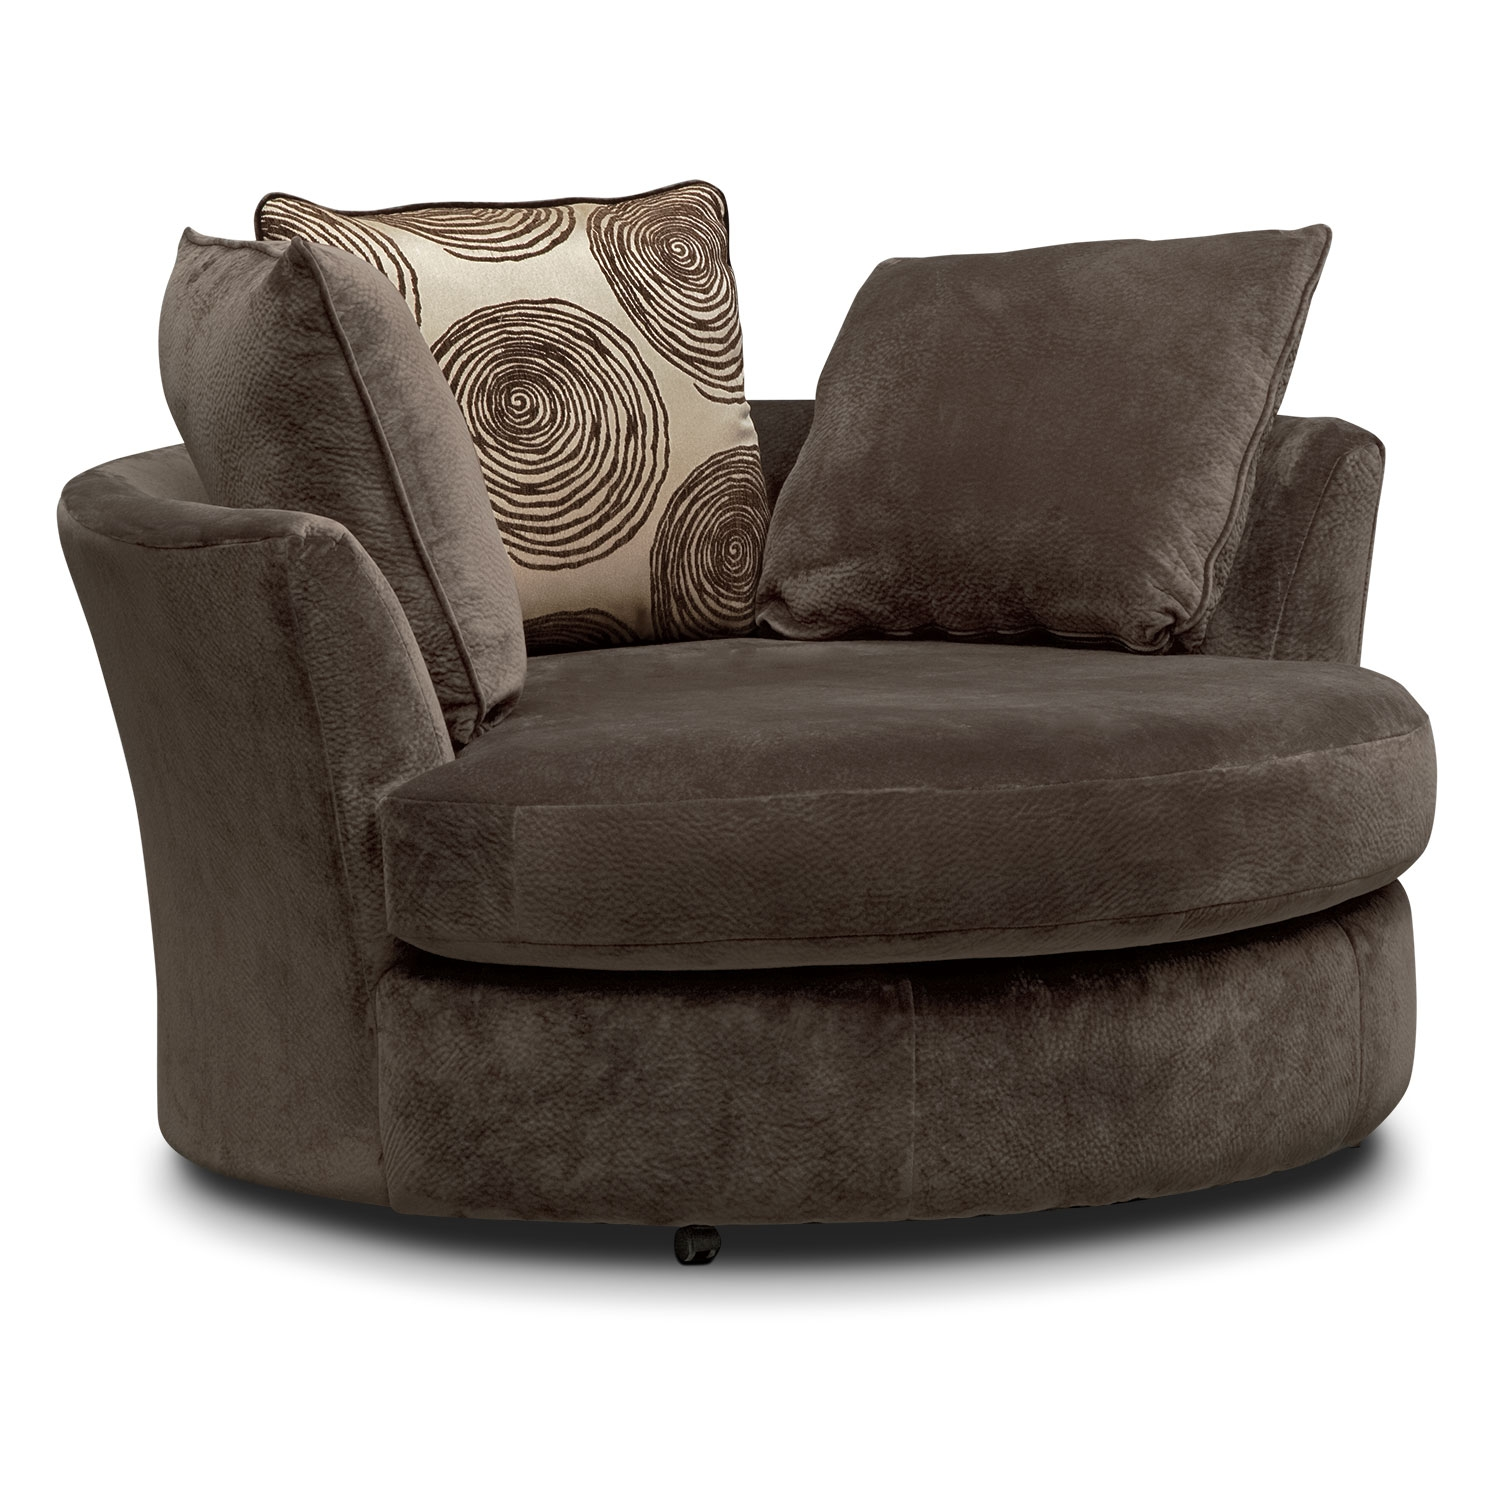 Cordelle Swivel Chair Chocolate Value City Furniture With Regard To Round Swivel Sofa Chairs (Image 2 of 15)